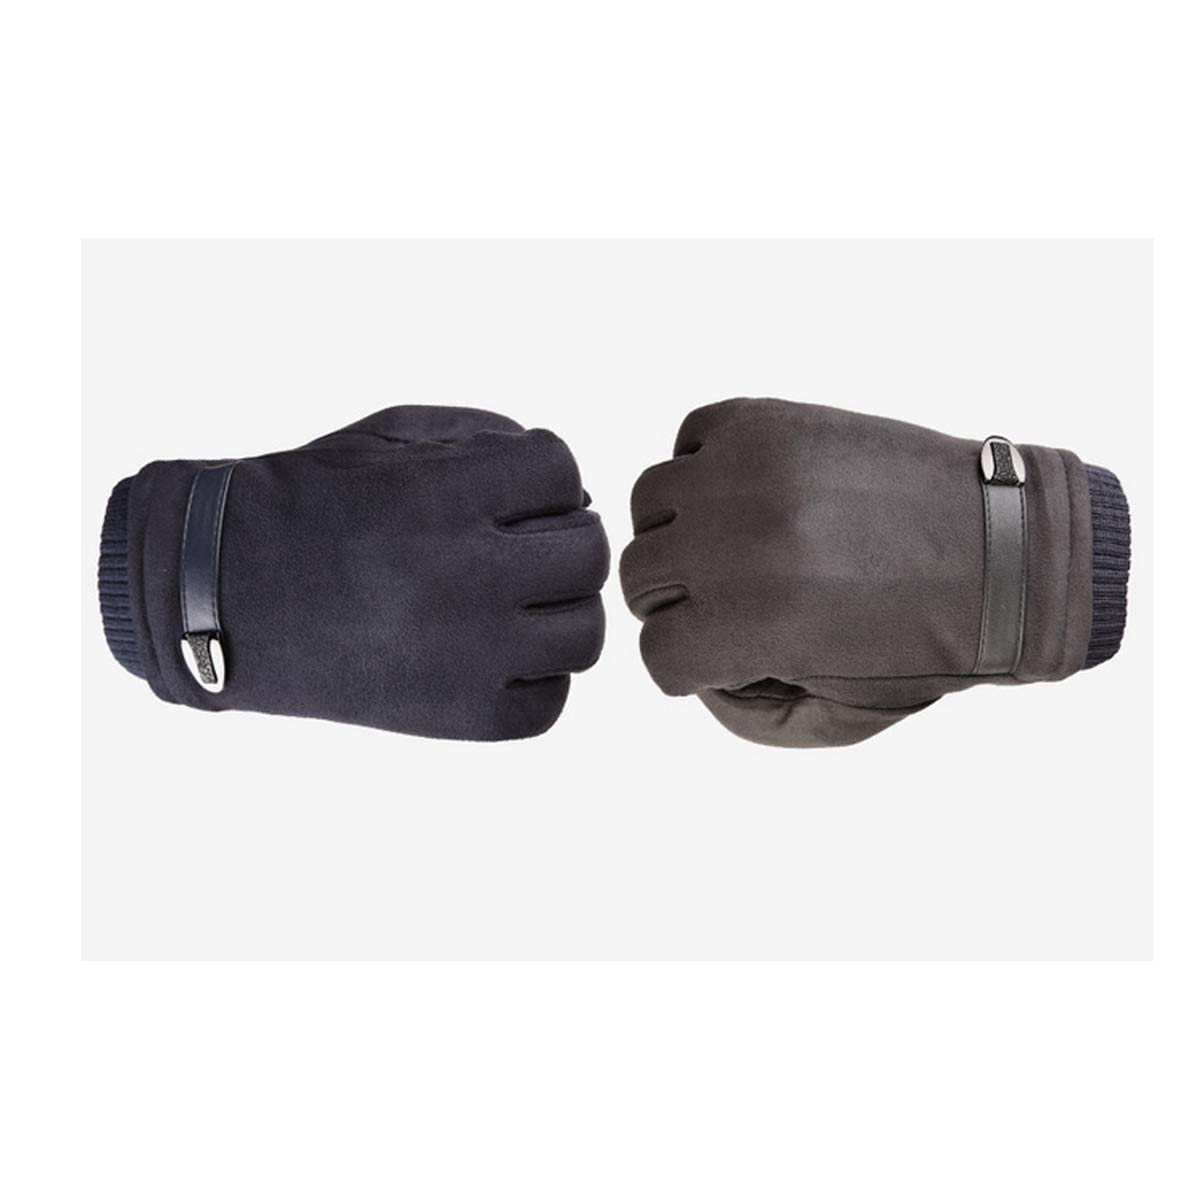 Gloves Mens Winter Touch Screen Suede Outdoor Driving Riding Plus Velvet Thick Warm Gloves Gift for a lover